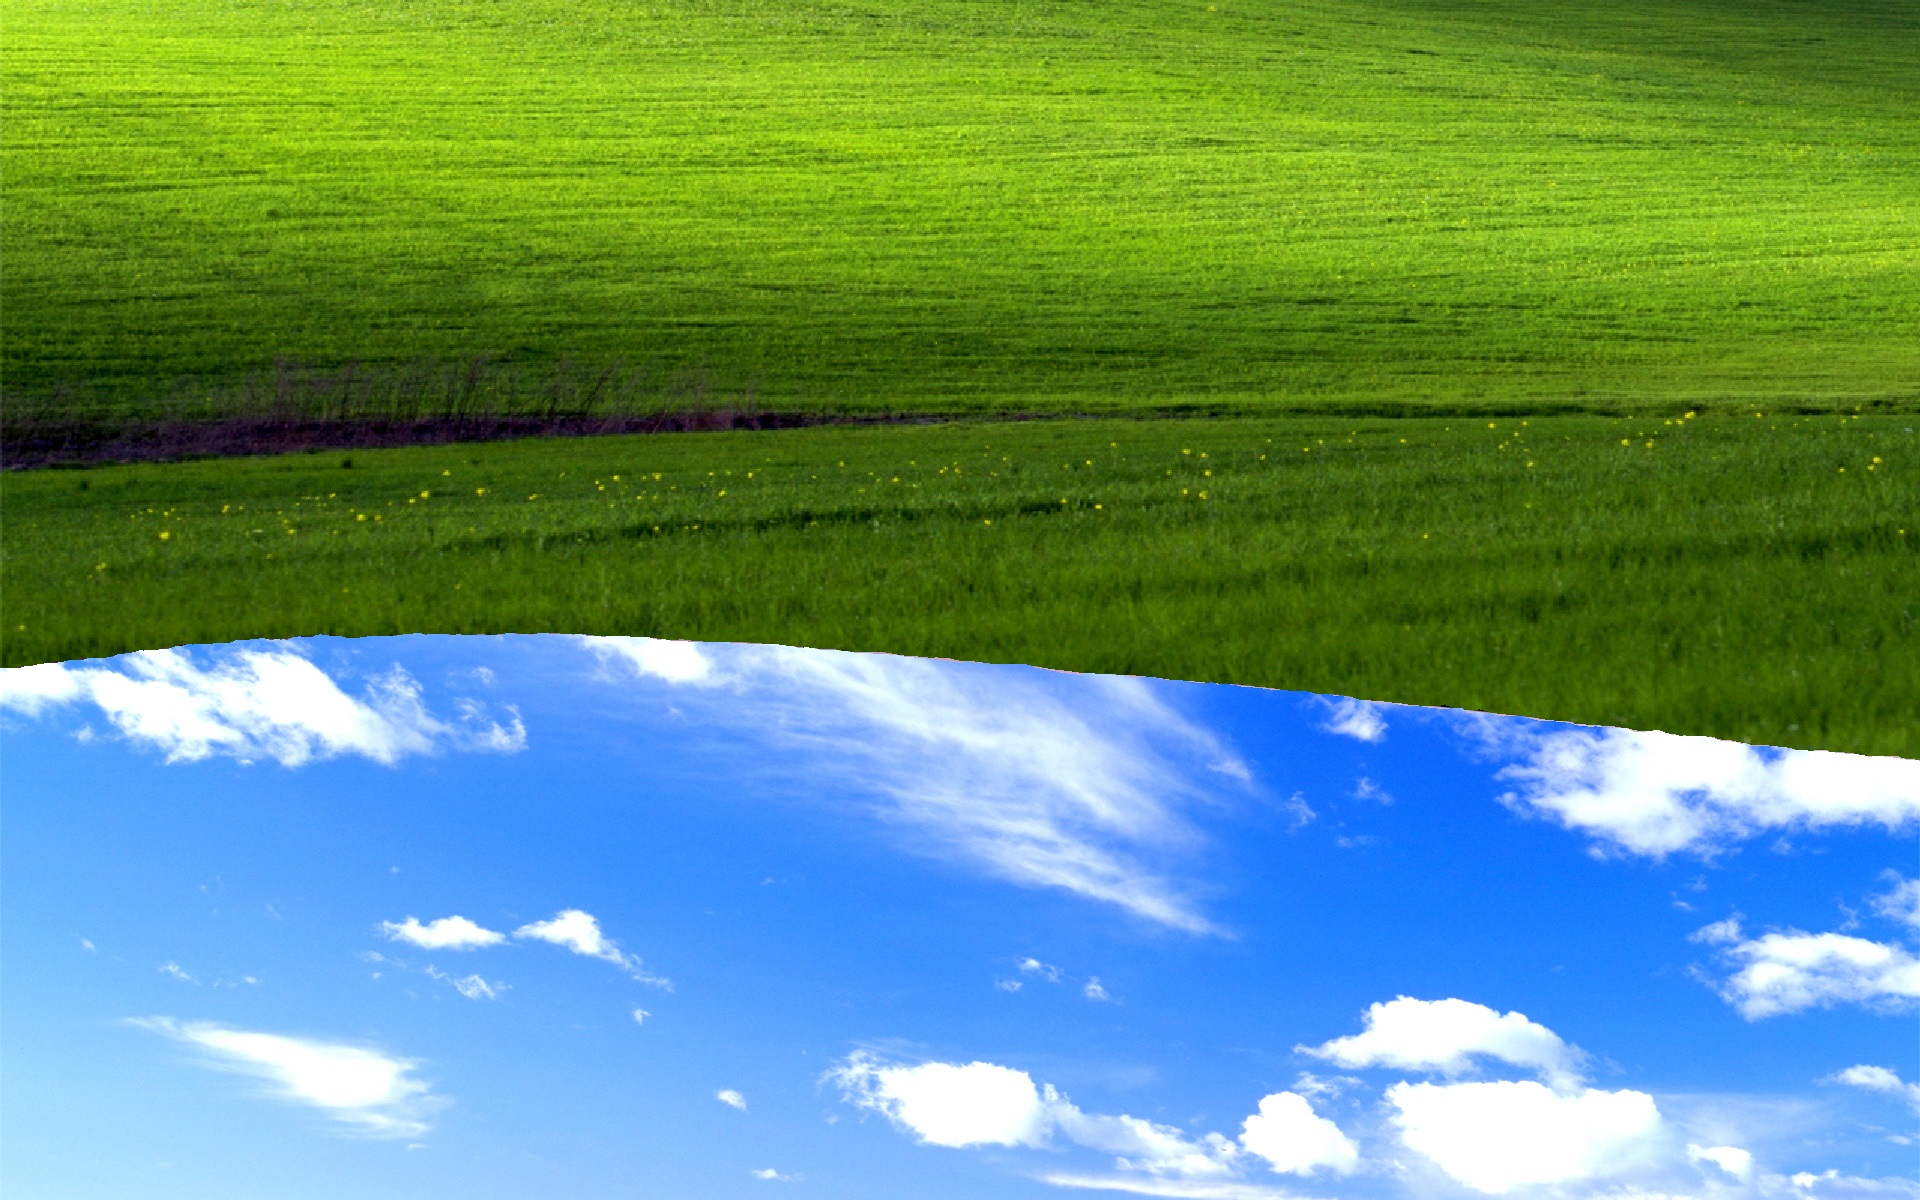 Bliss Grassland Green Sky Nature Field Grass Meadow Ecosystem Daytime Atmosphere Of Earth Water Resources